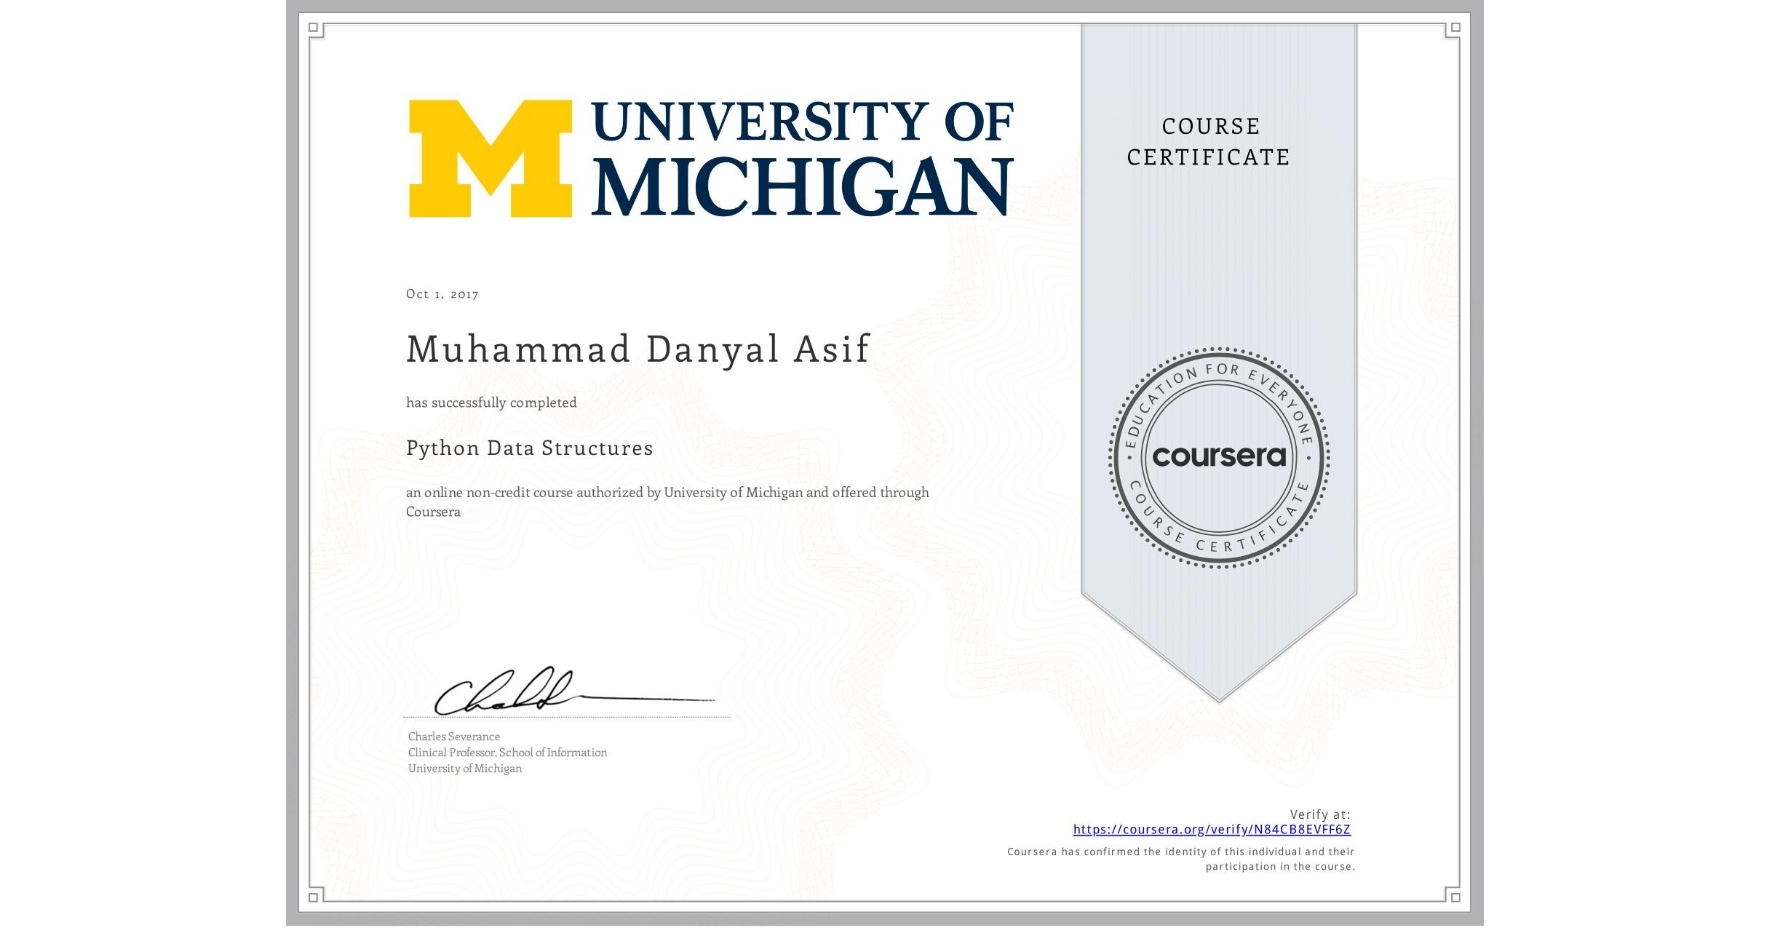 View certificate for Muhammad Danyal  Asif, Python Data Structures, an online non-credit course authorized by University of Michigan and offered through Coursera